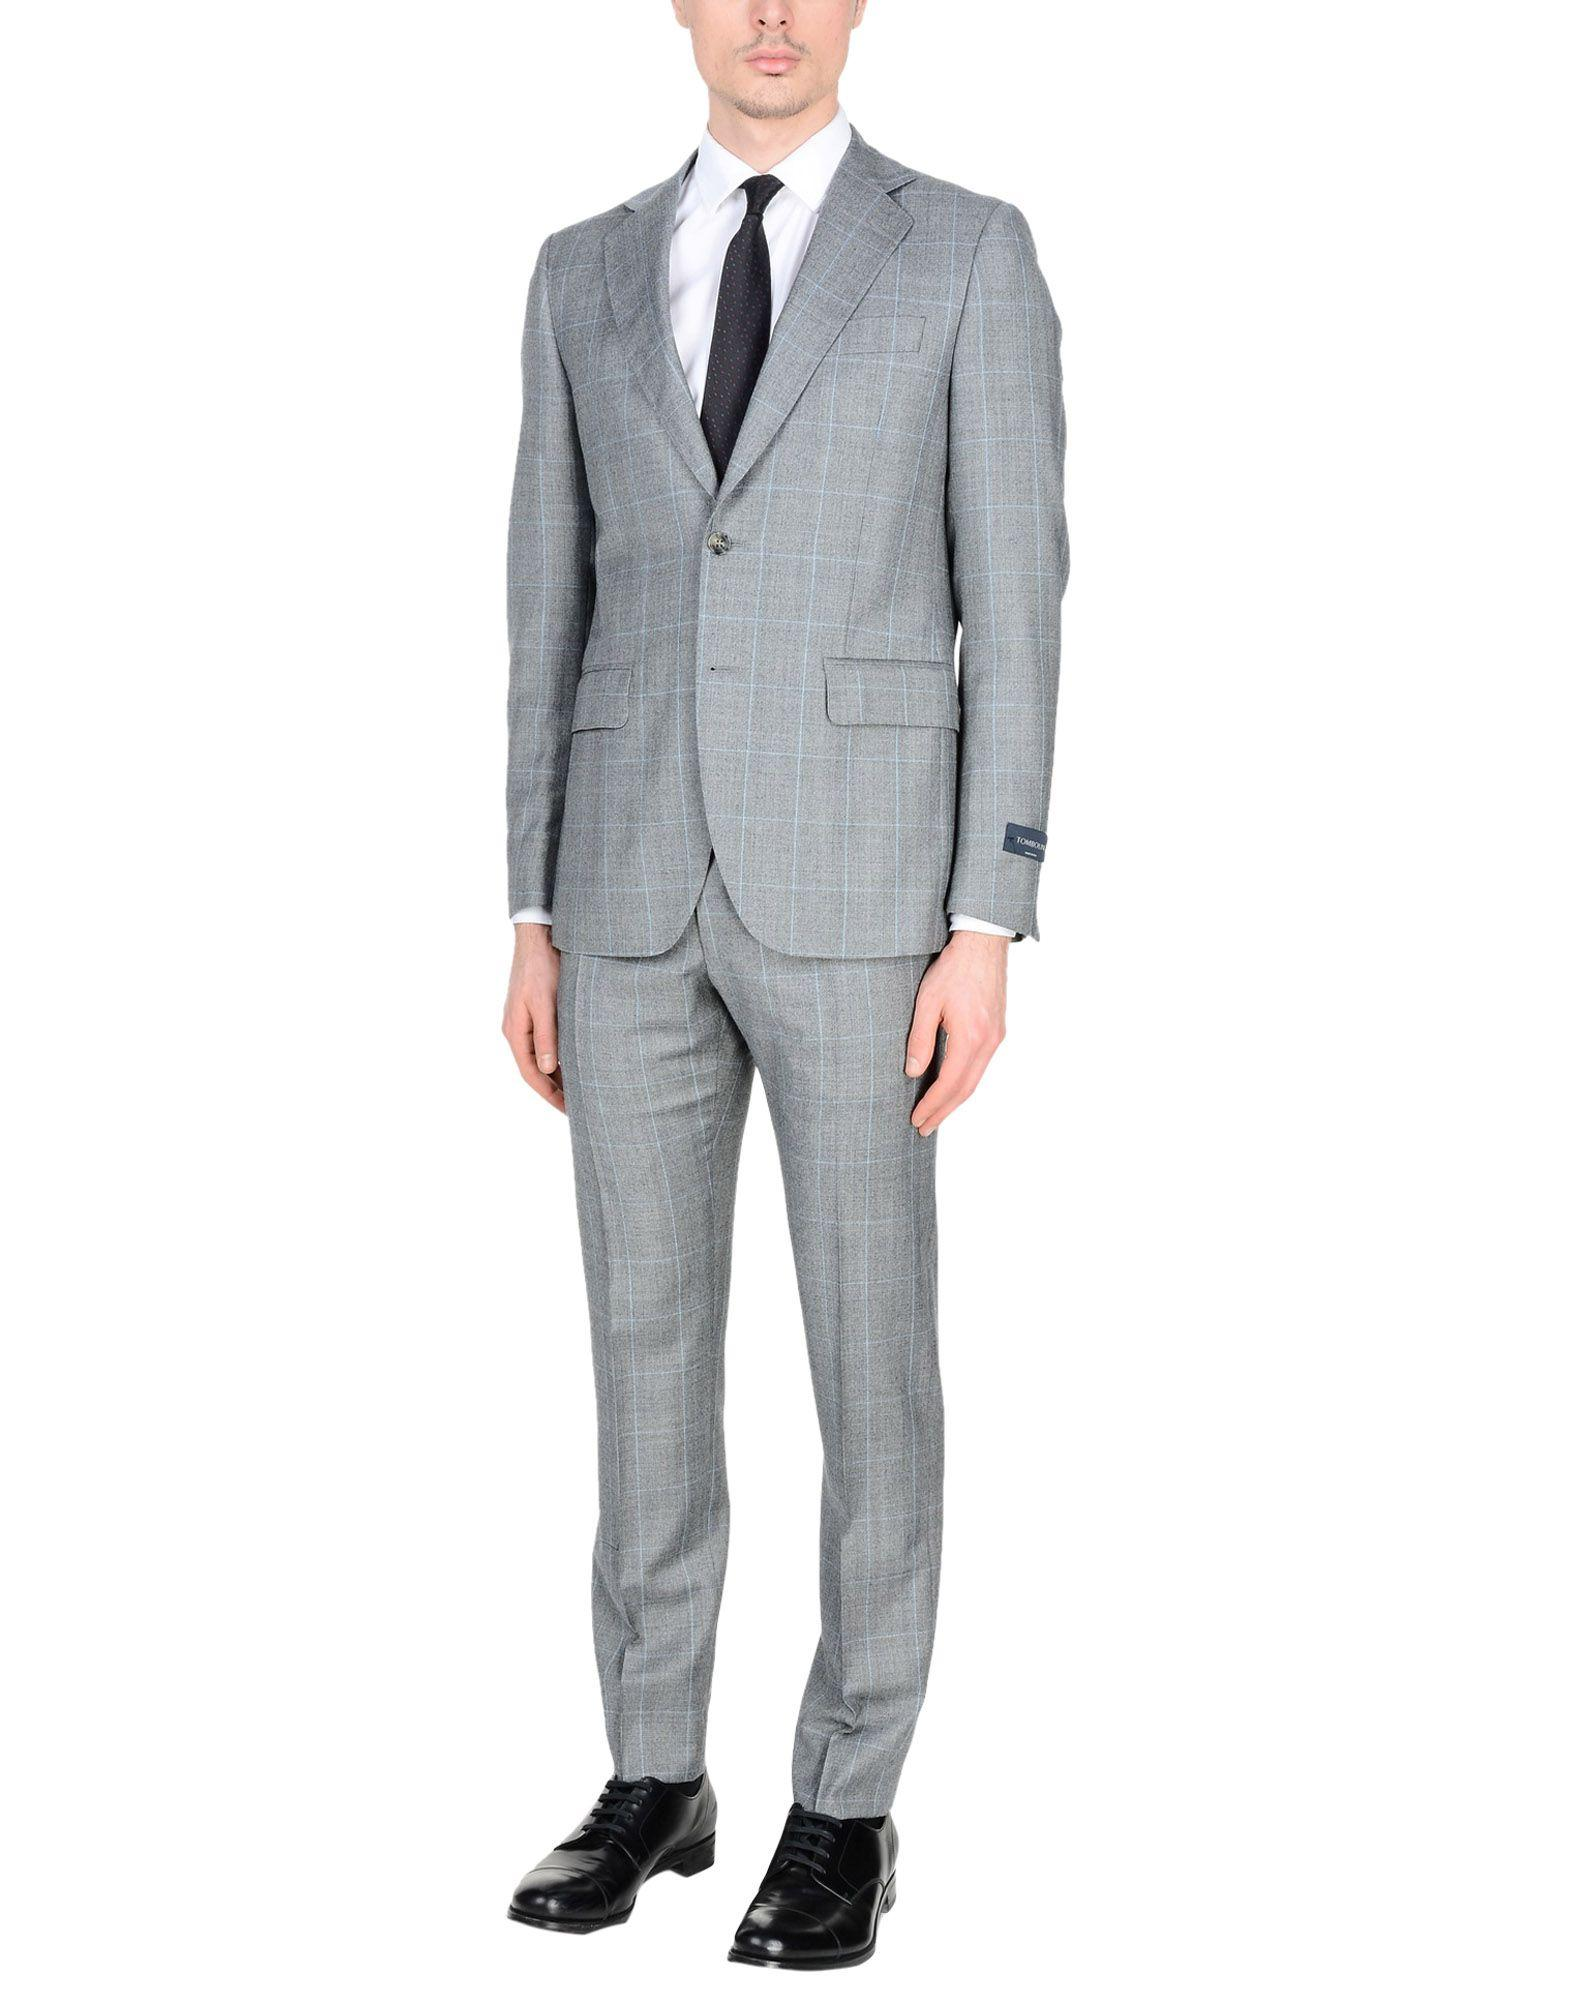 Tombolini Suits In Grey